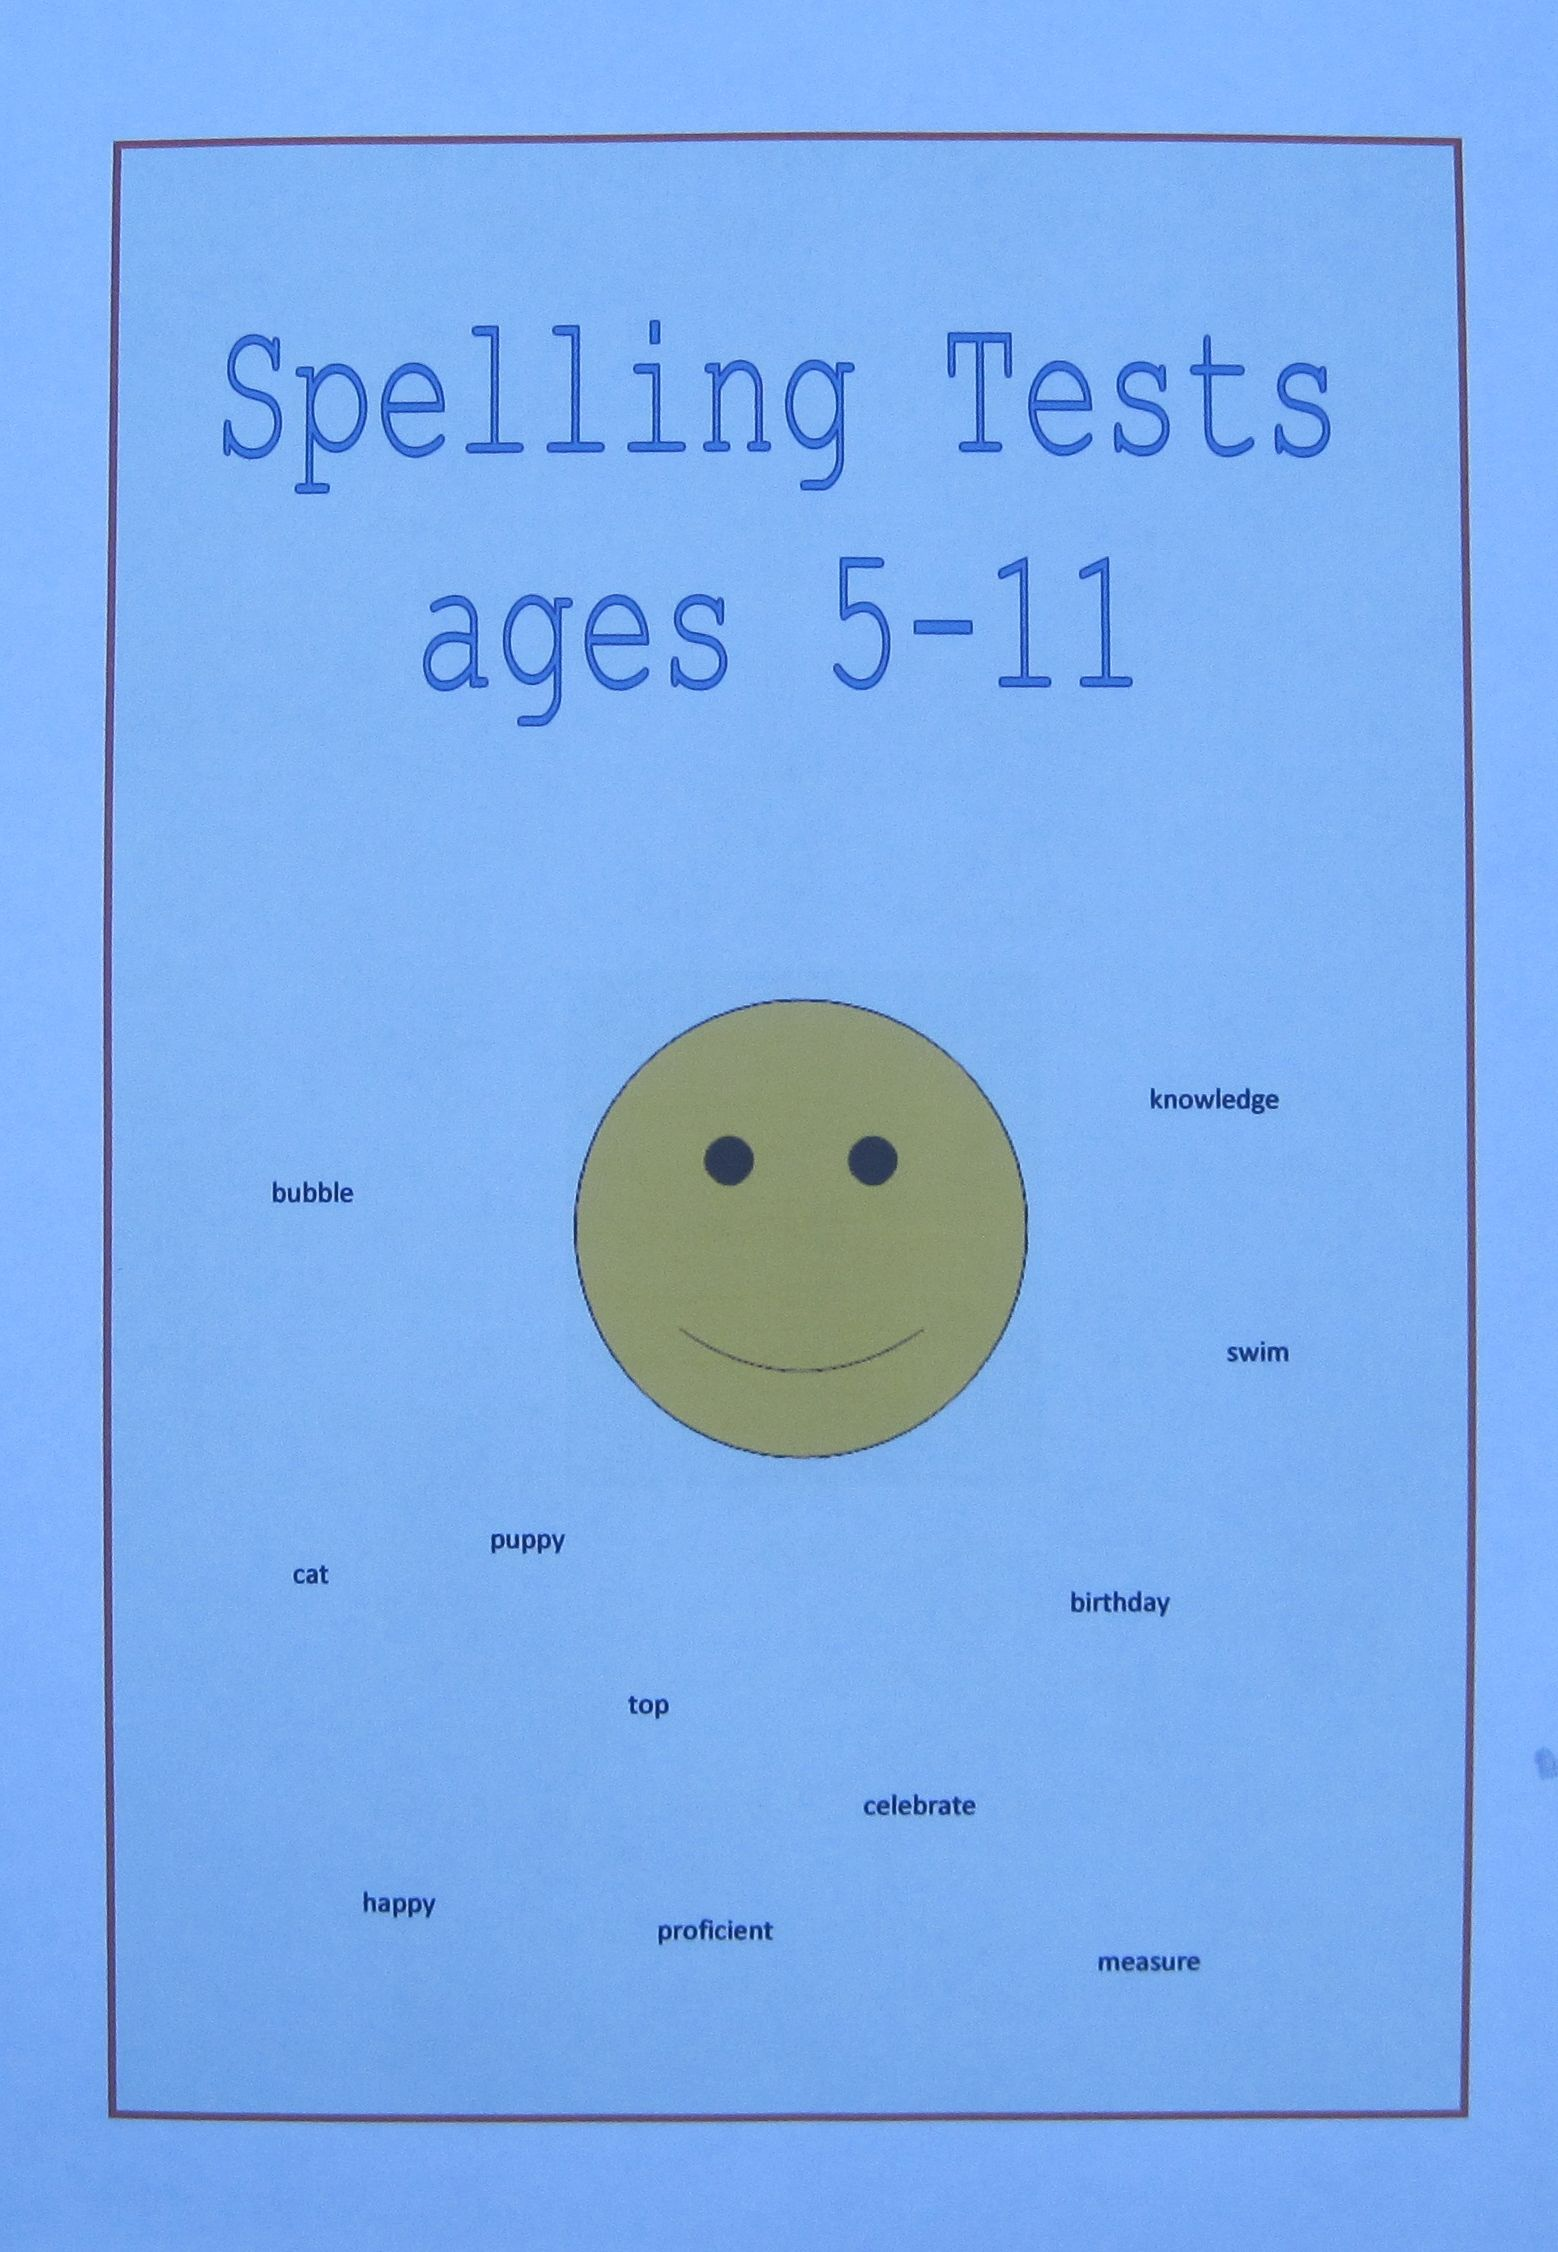 Spelling Tests For Children Aged 5 6 7 8 9 10 And 11 Years Old